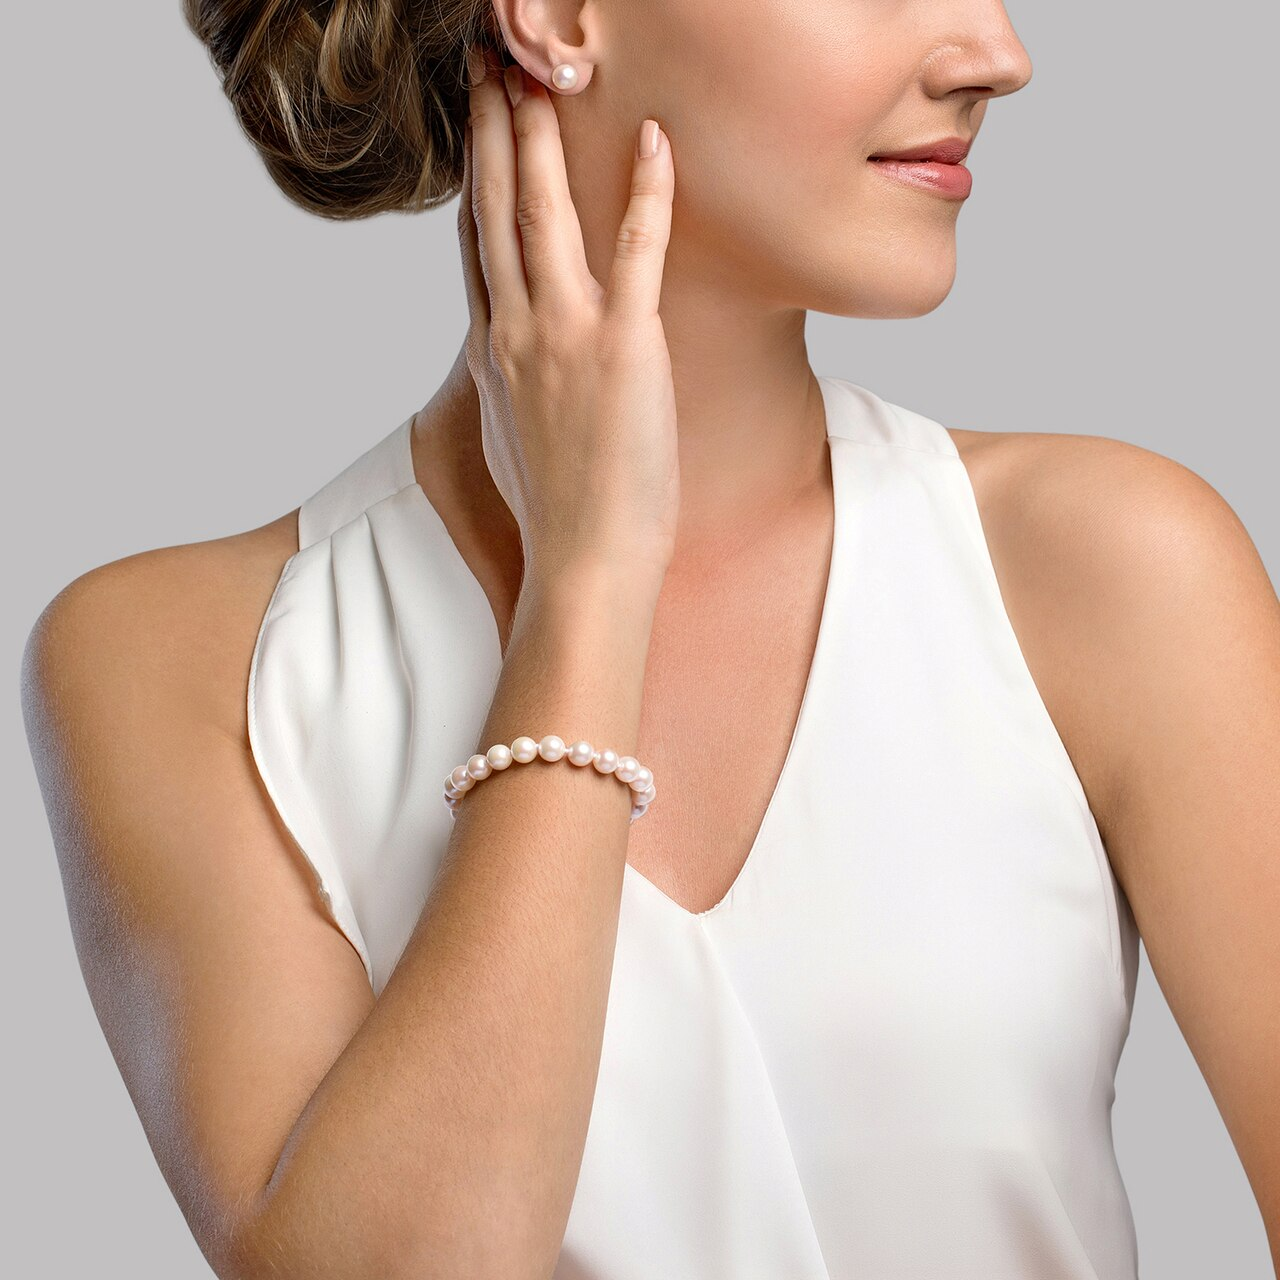 This elegant bracelet features 10.0-11.0mm White South Sea pearls, handpicked for their luminous luster